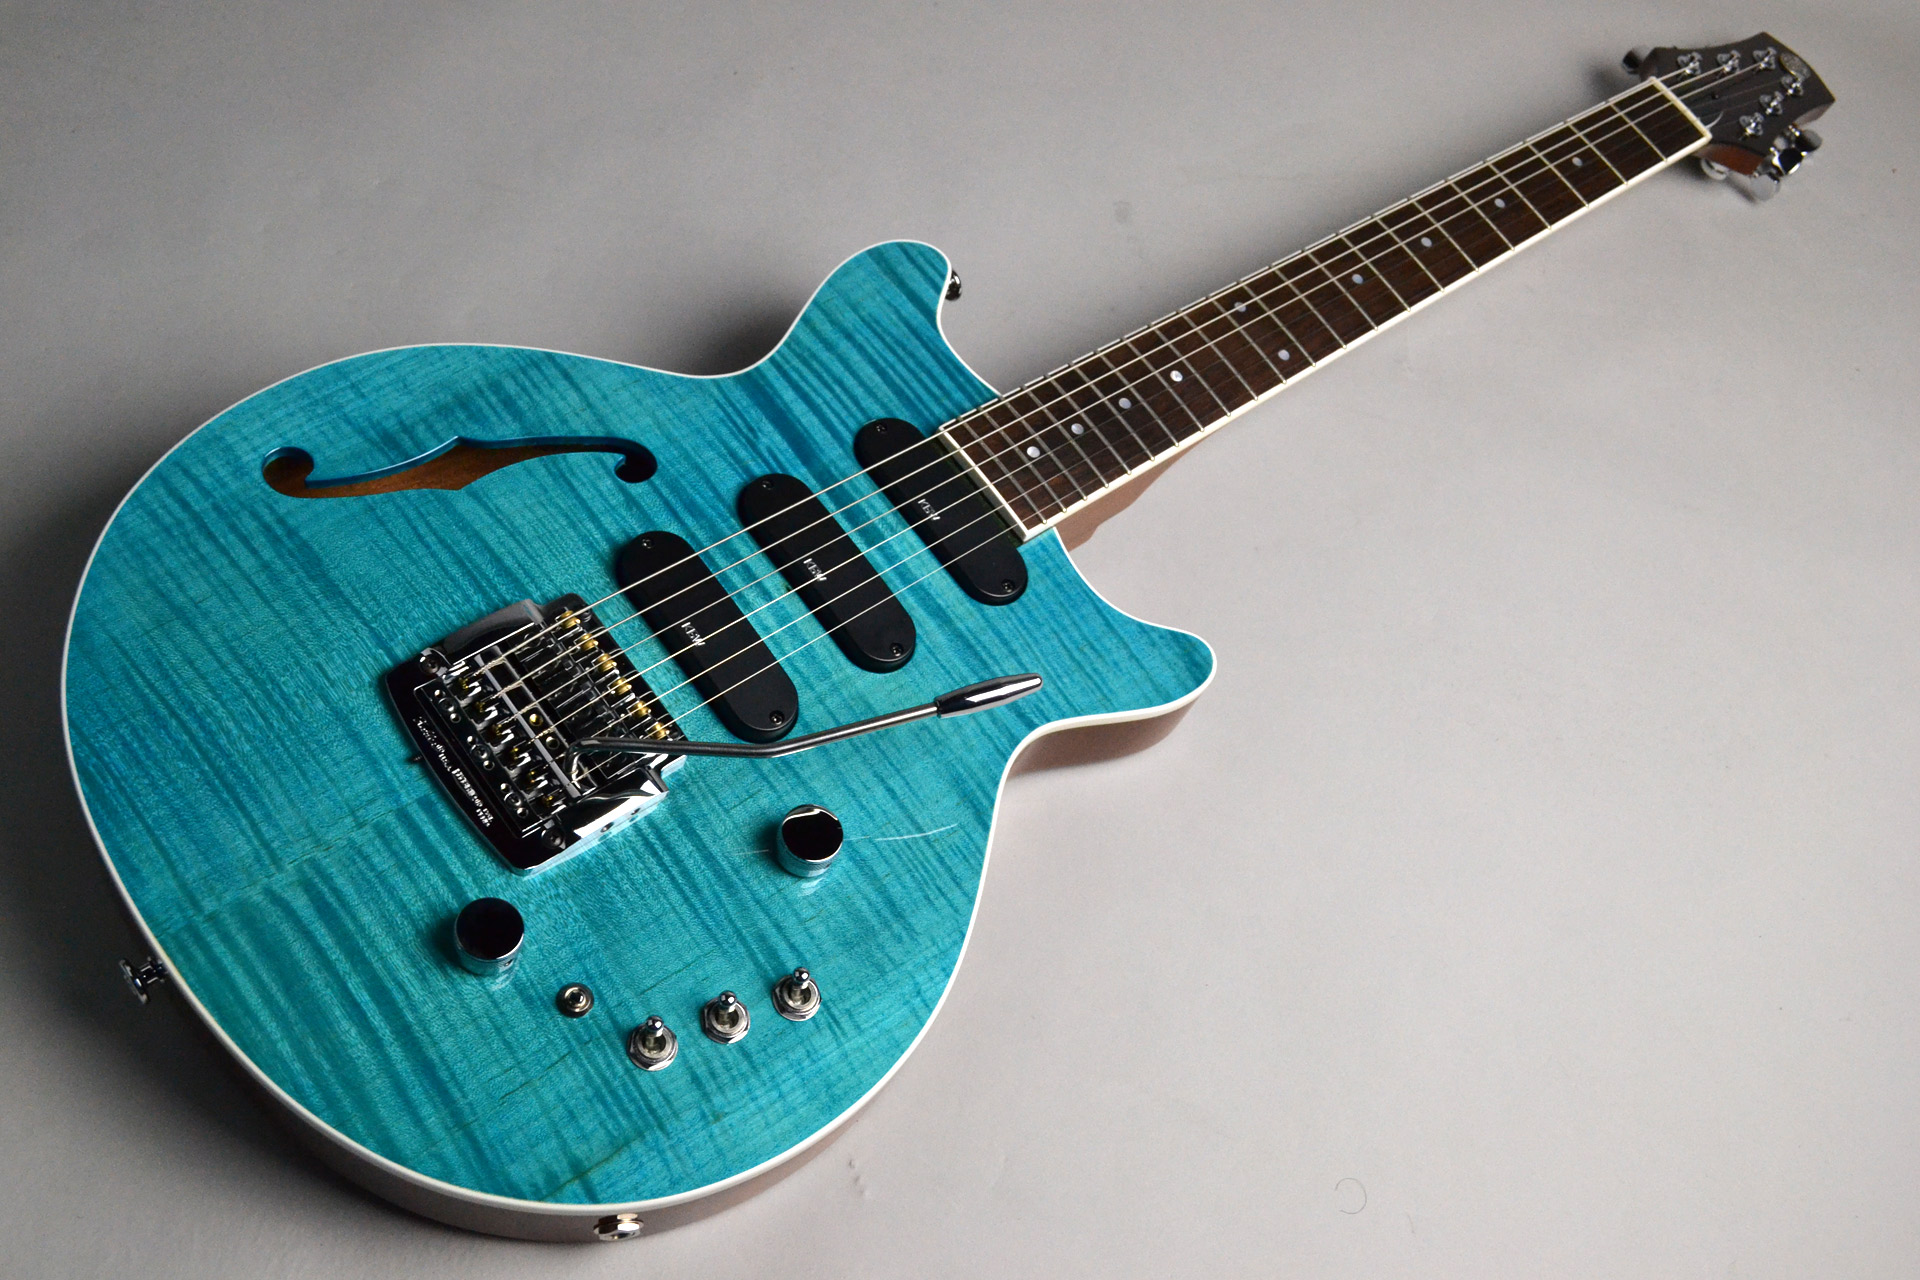 Kz One Semi-Hollow 3S23 Kahler Turquoise Blue【楽器フェアモデル】